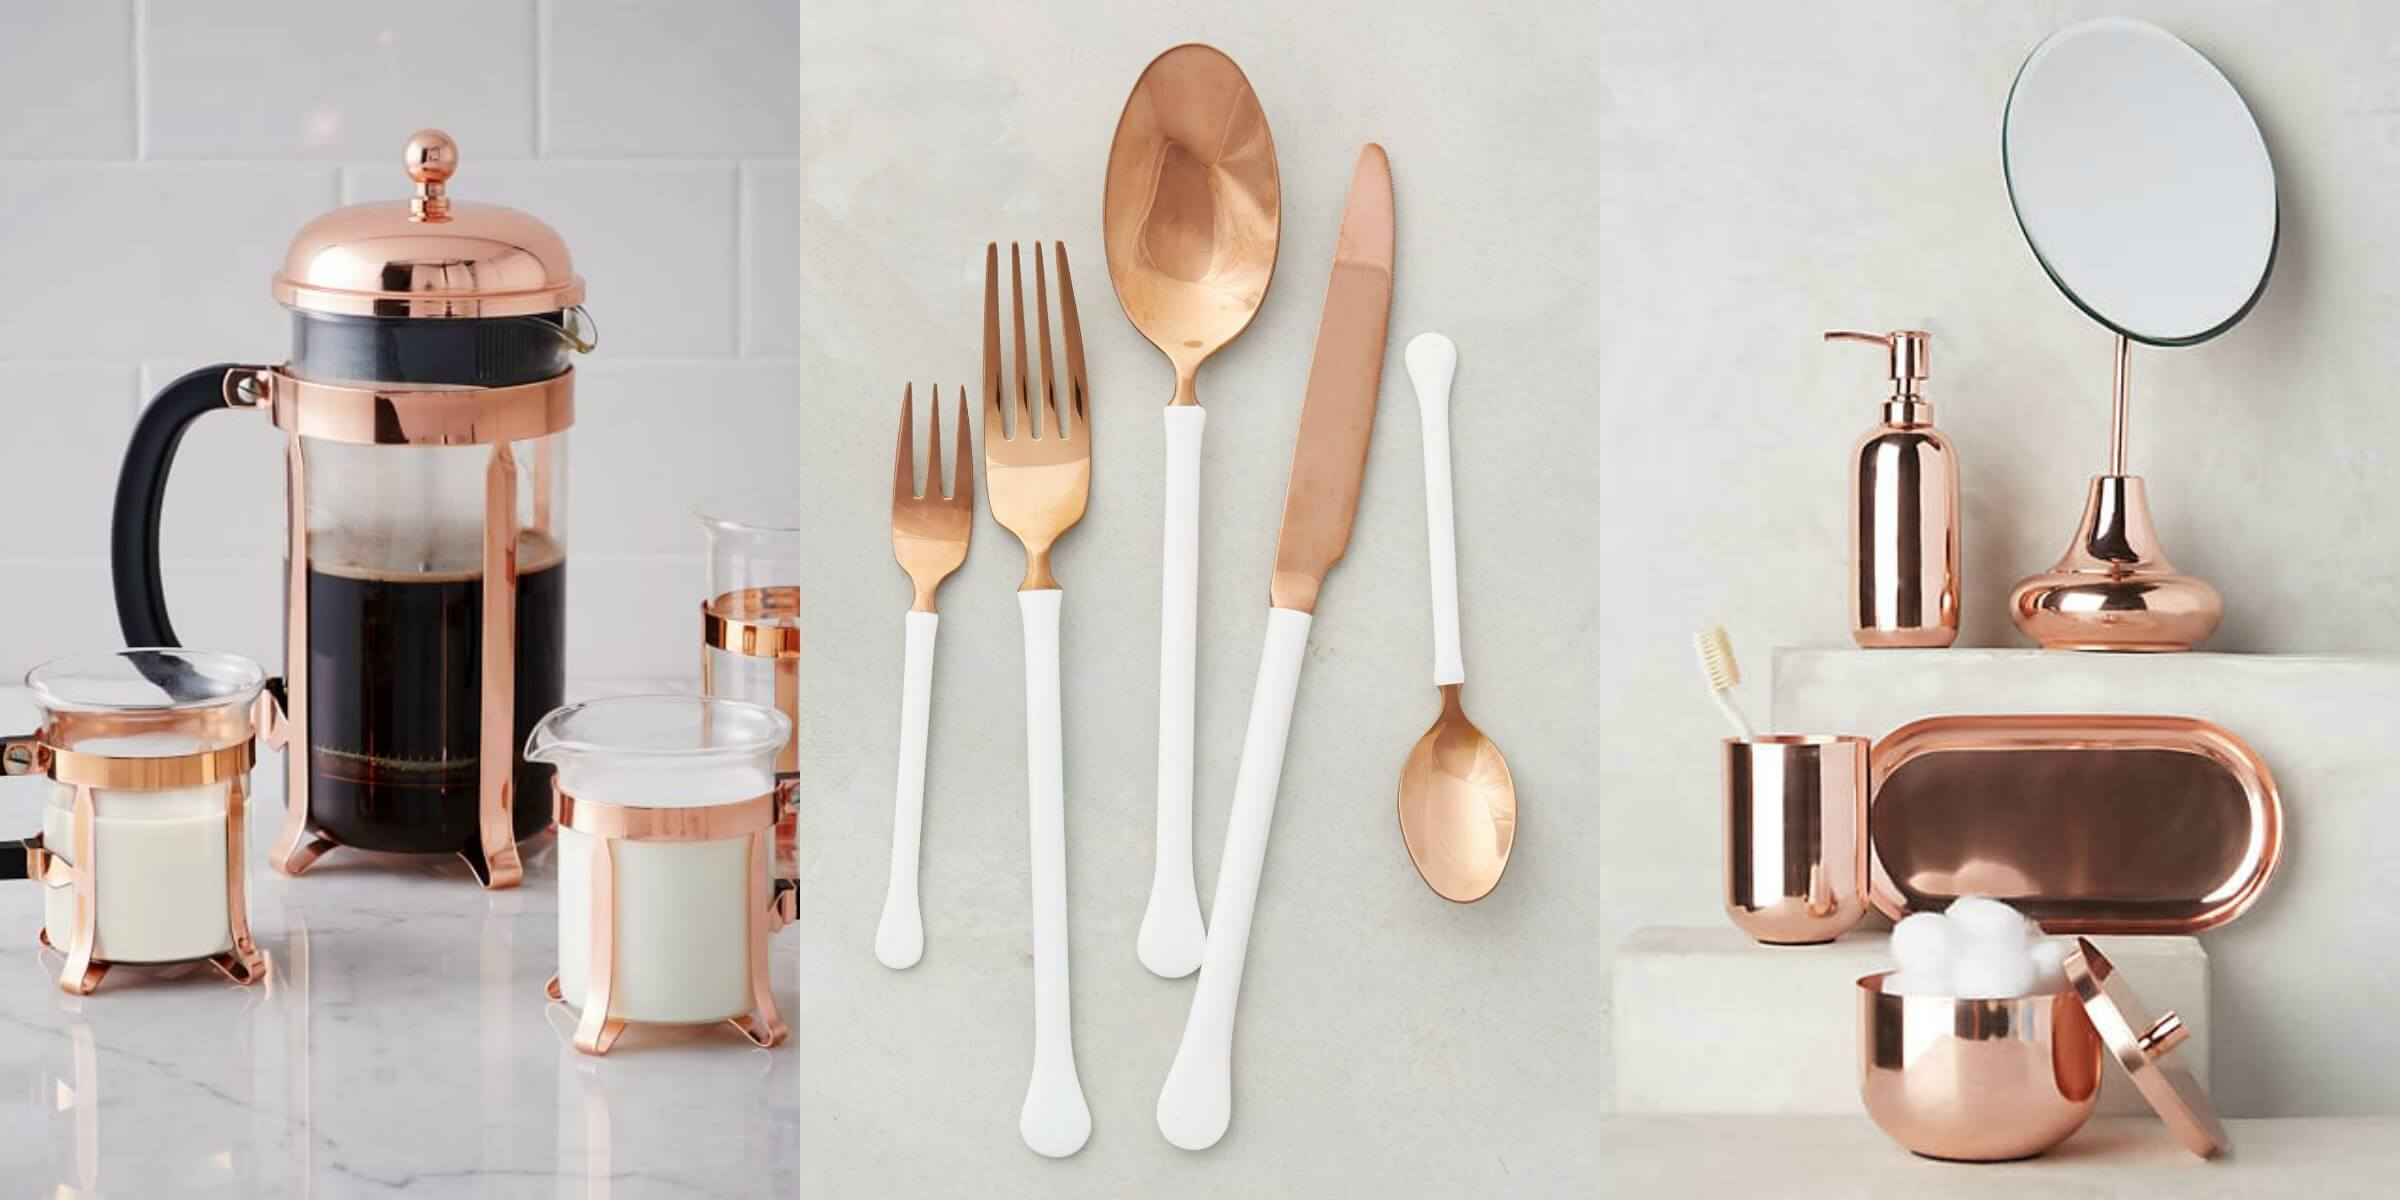 Because A Copper Decor Item Can Make Such A Statement, It May Seem  Difficult To Make It Flow Naturally With The Rest Of Your Home. Consider  The New Rule For ...